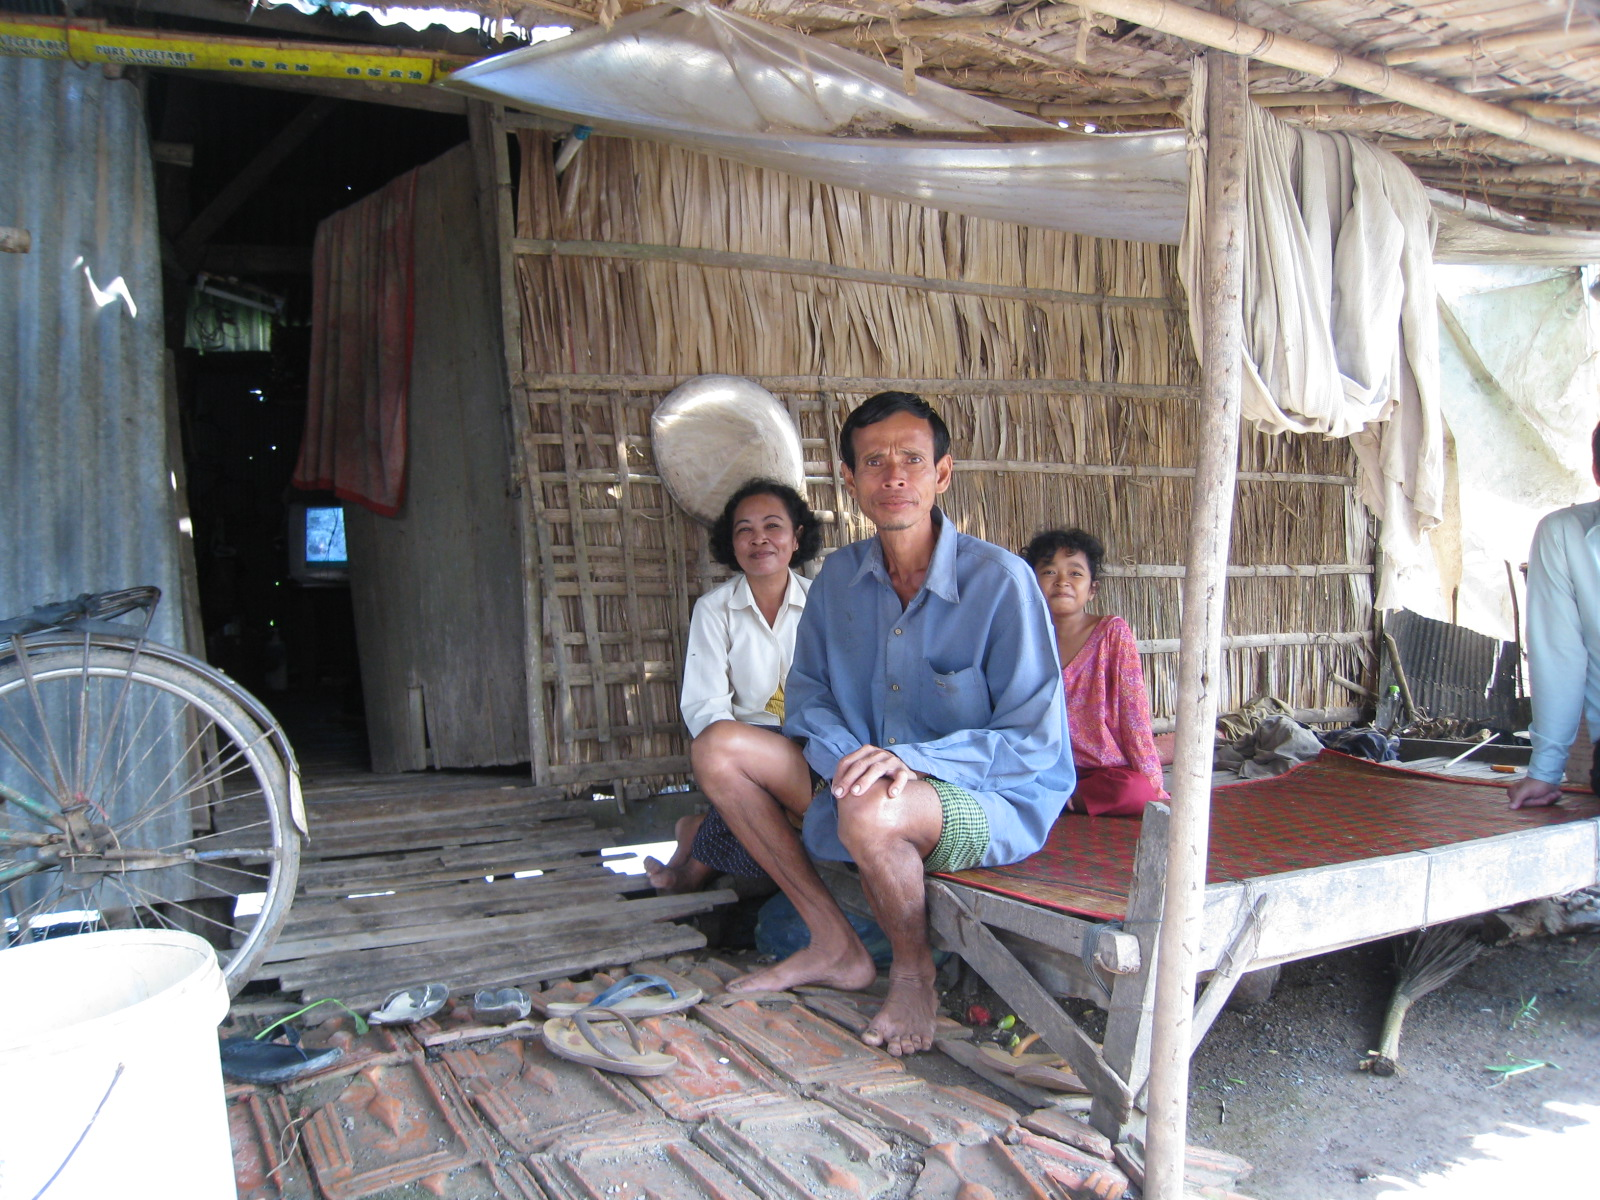 First Kiva Borrower interviewed that day.